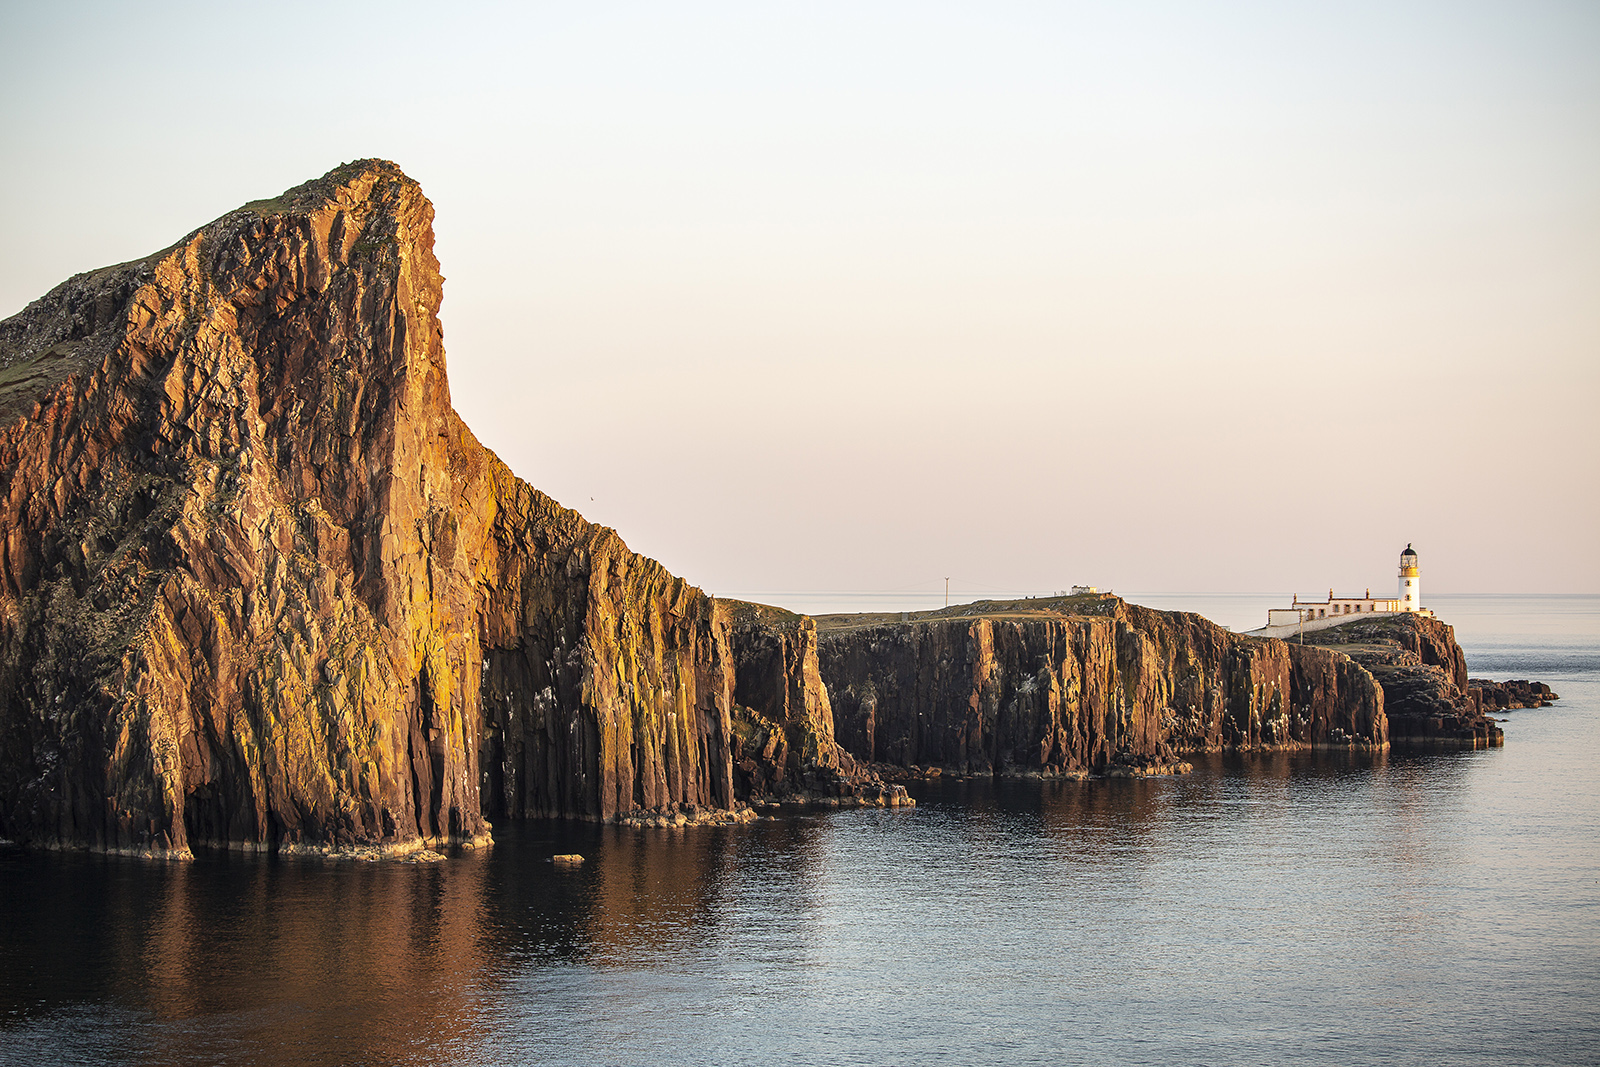 'Neist Point' by Paul Rigg